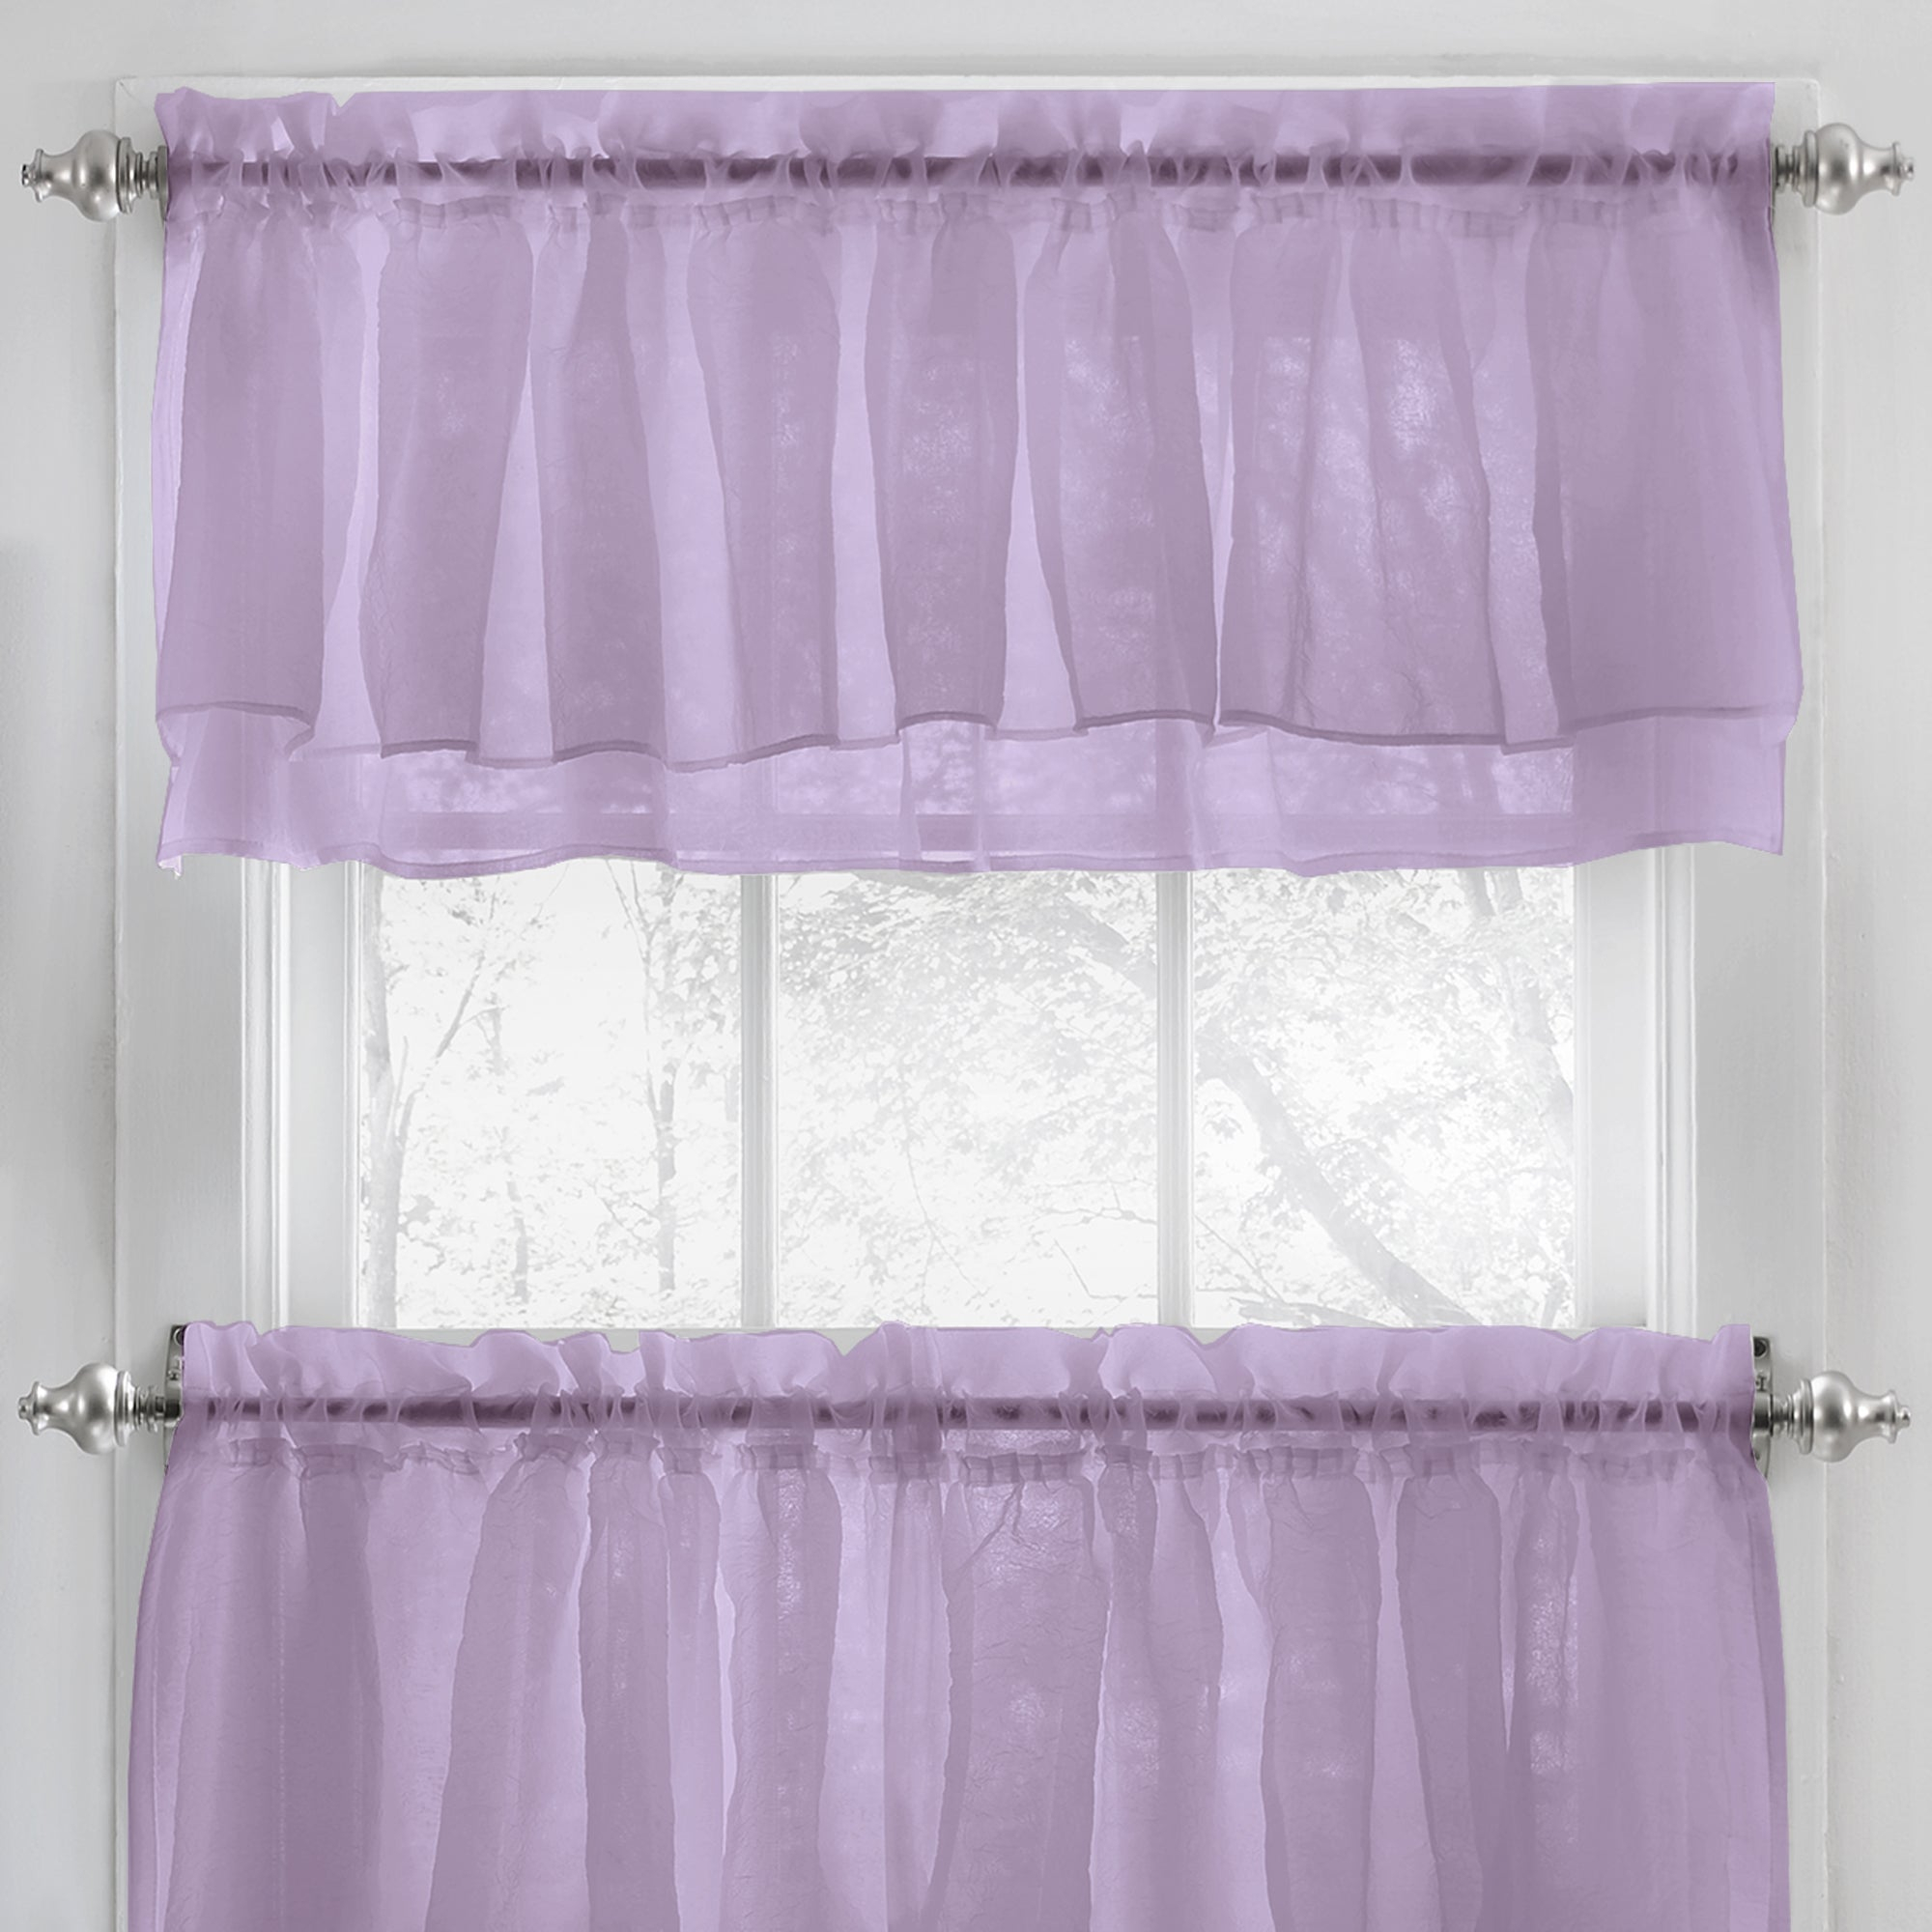 Elegant Crushed Voile Ruffle Blue/white/pink/purple/beige Window Curtain Pieces With Optional Valance And Tiers In Elegant Crushed Voile Ruffle Window Curtain Pieces (View 6 of 20)